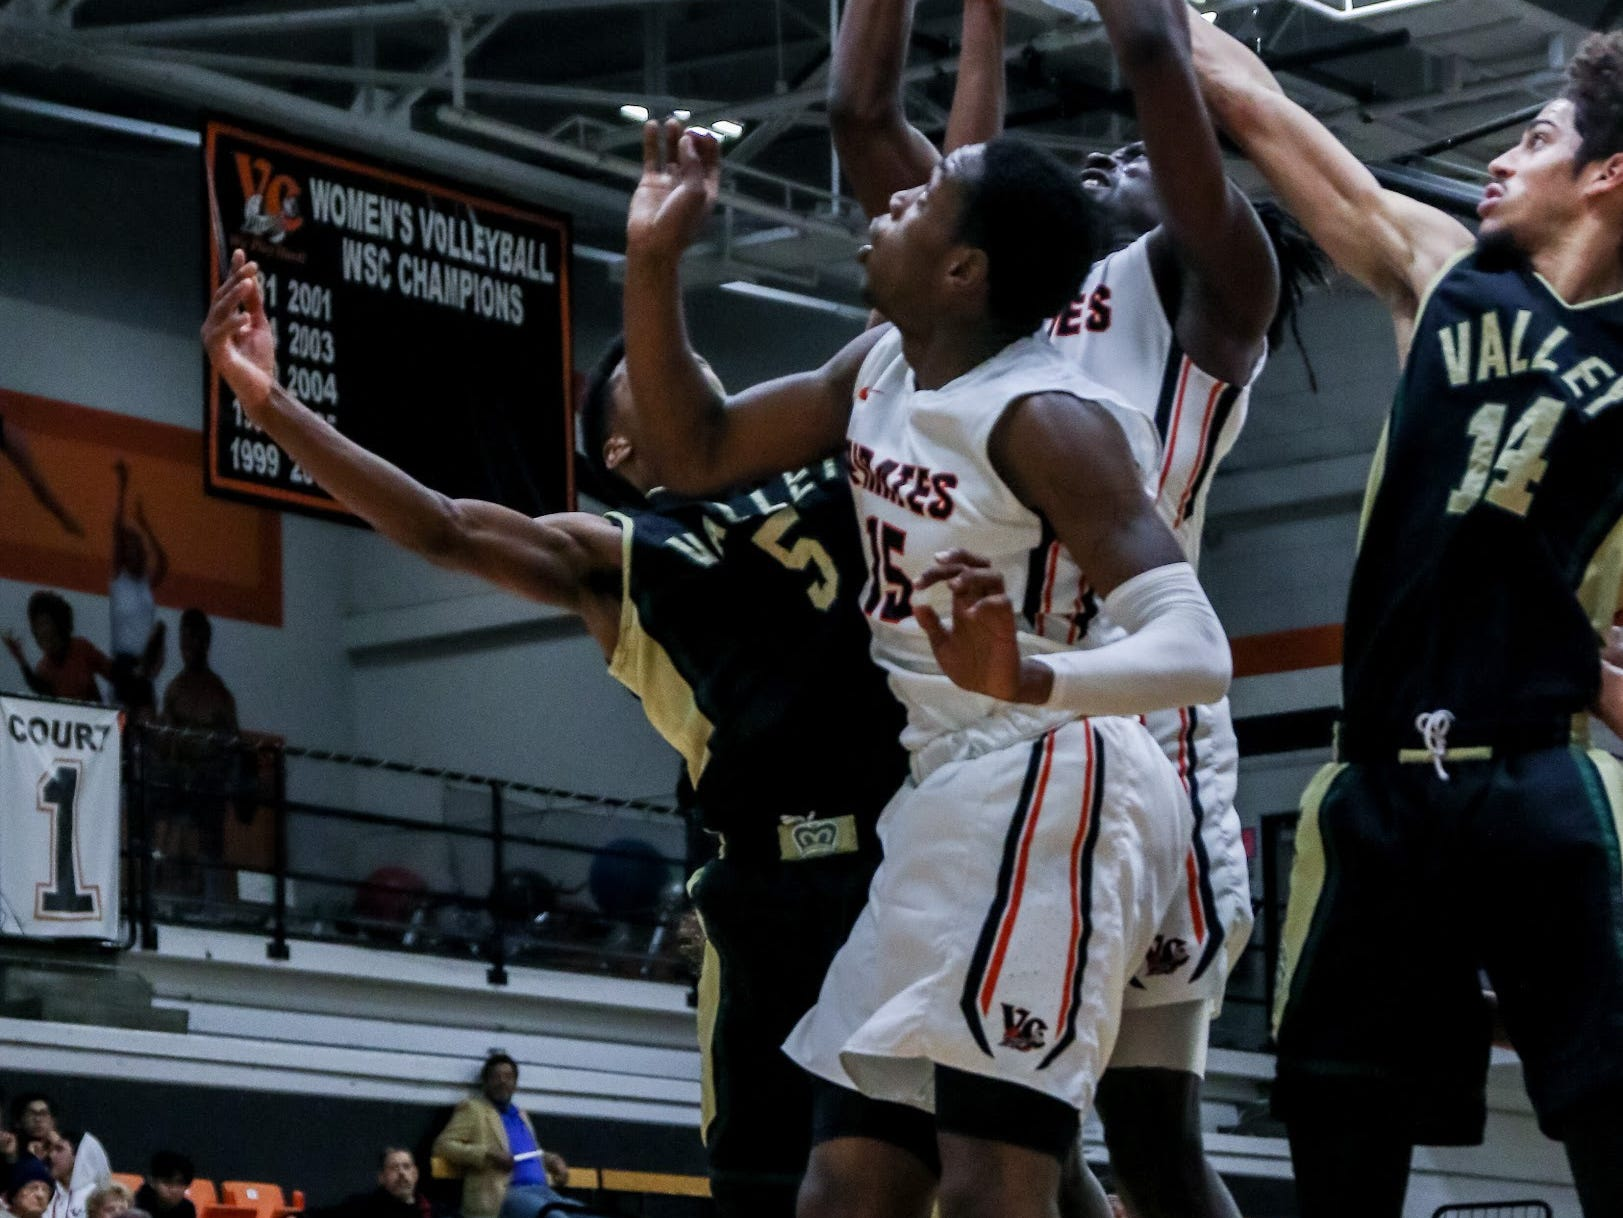 Ventura's Tone Patton grabs a rebound over teammate Dayveon Bates and Los Angeles Valley's Joshua Abrams on Wednesday night in the CCCAA Southern California regional quarterfinal at the VC Athletic Event Center. L.A. Valley won, 78-74.